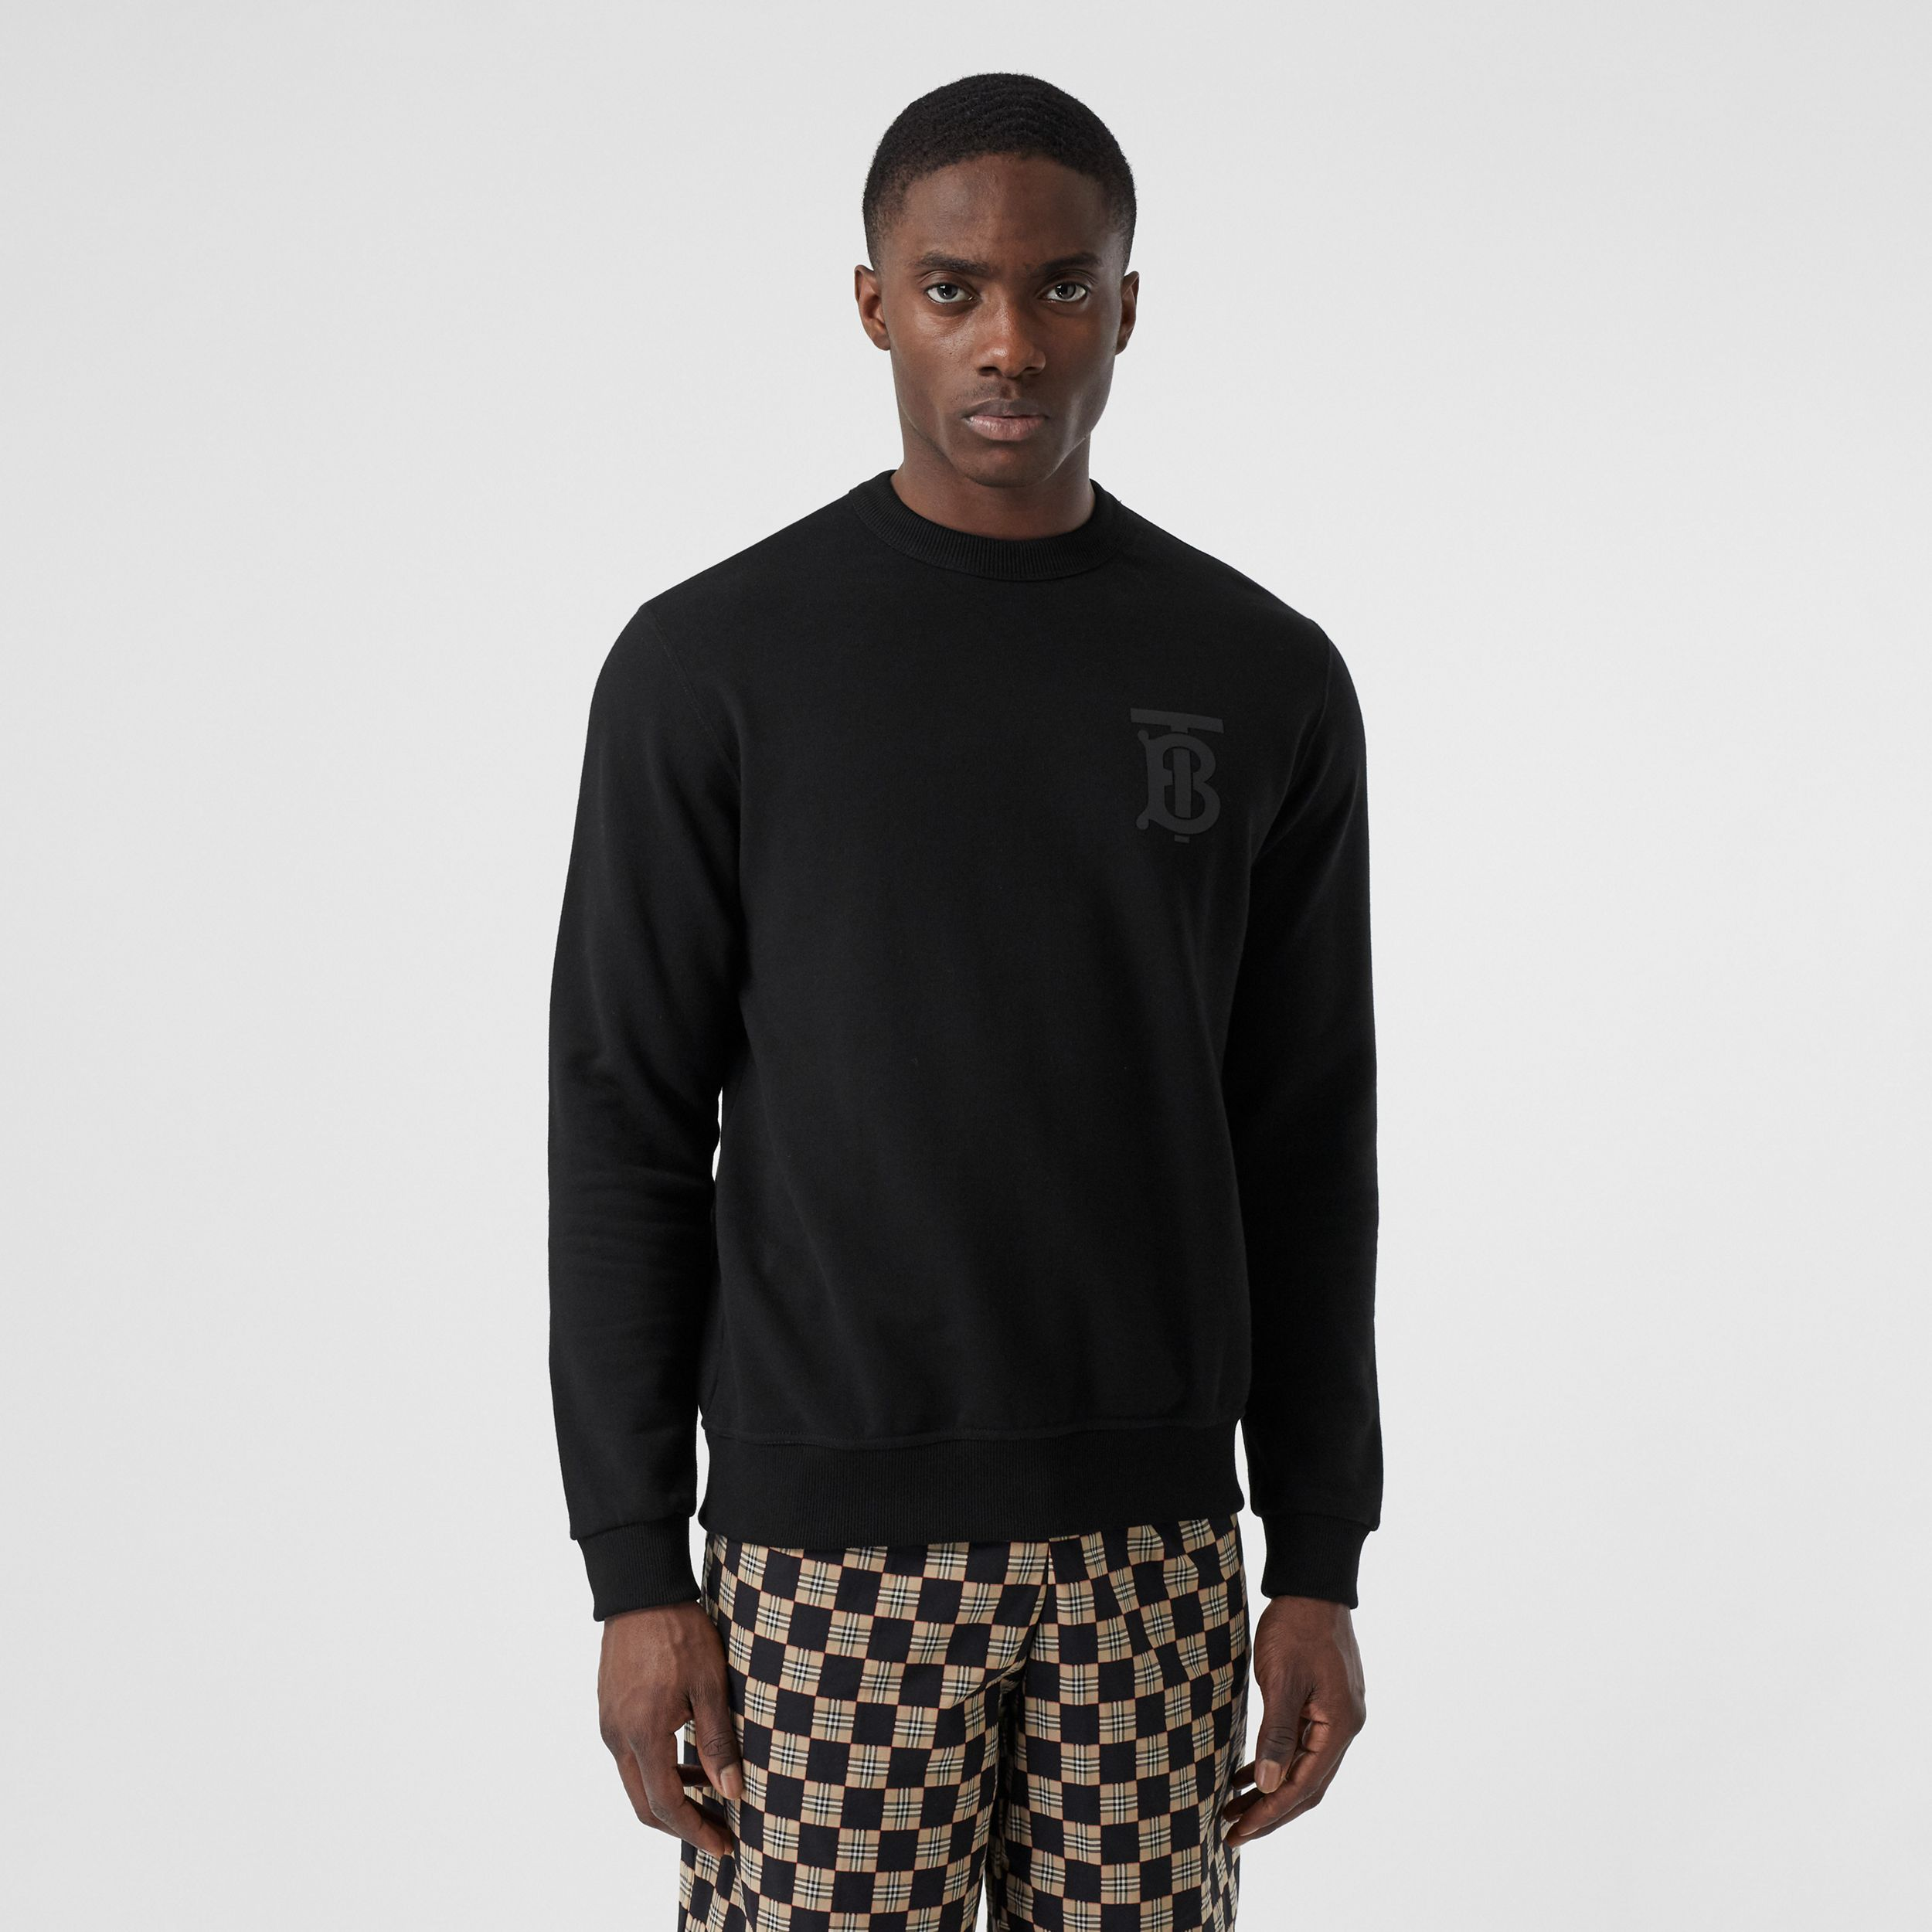 Monogram Motif Cotton Sweatshirt in Black - Men | Burberry - 1